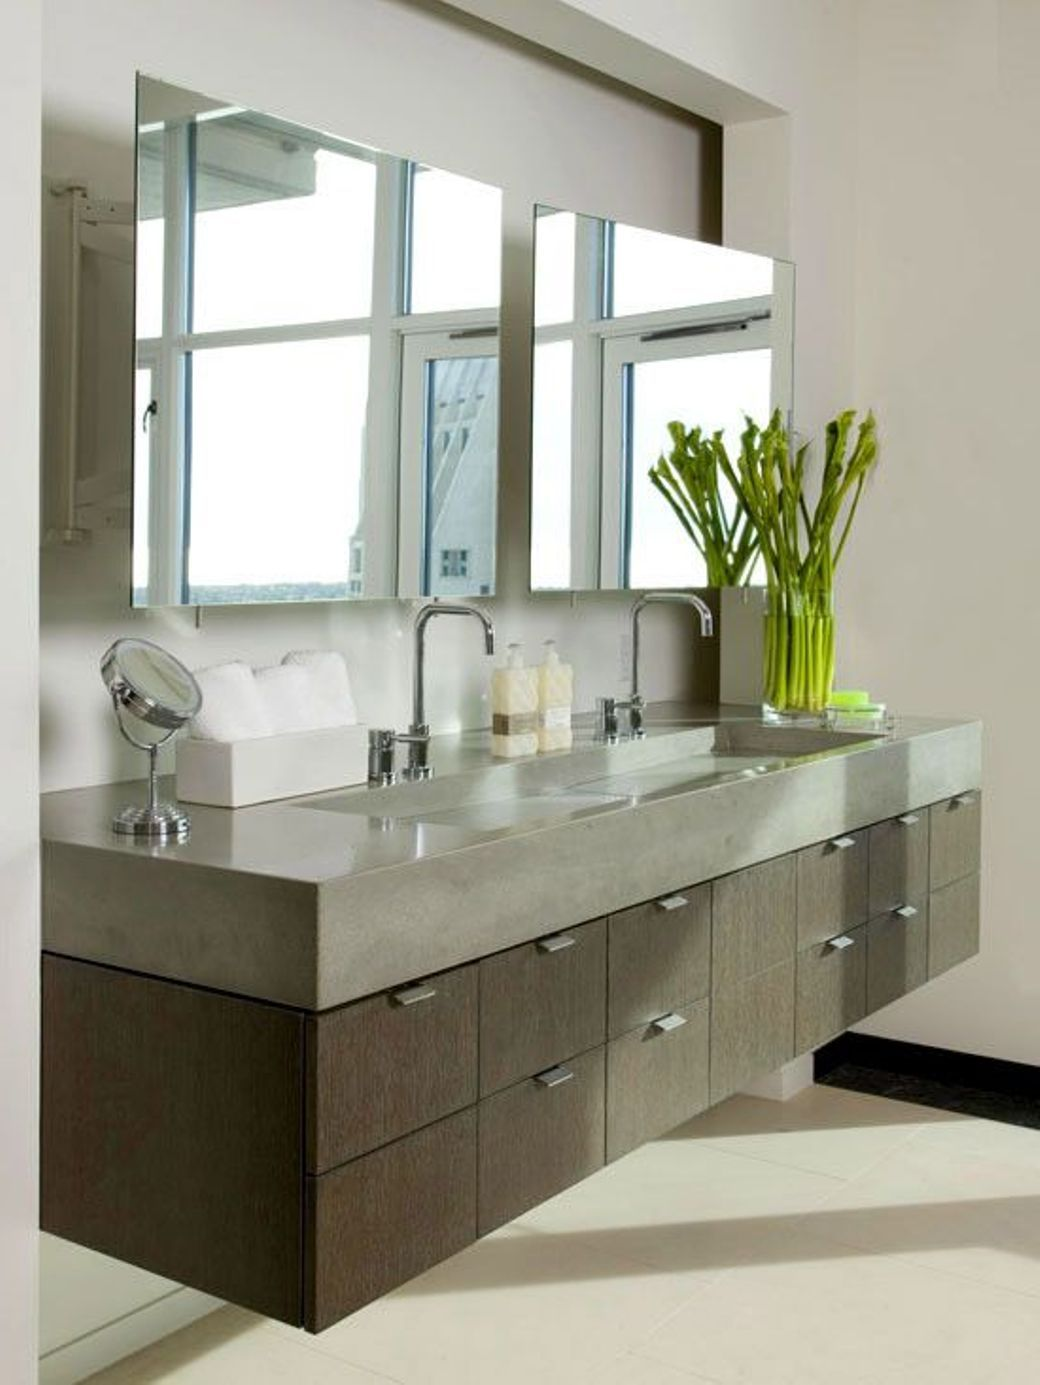 Bathroom Vanity Vendors bathroom , the modern bathroom vanity : floating modern bathroom